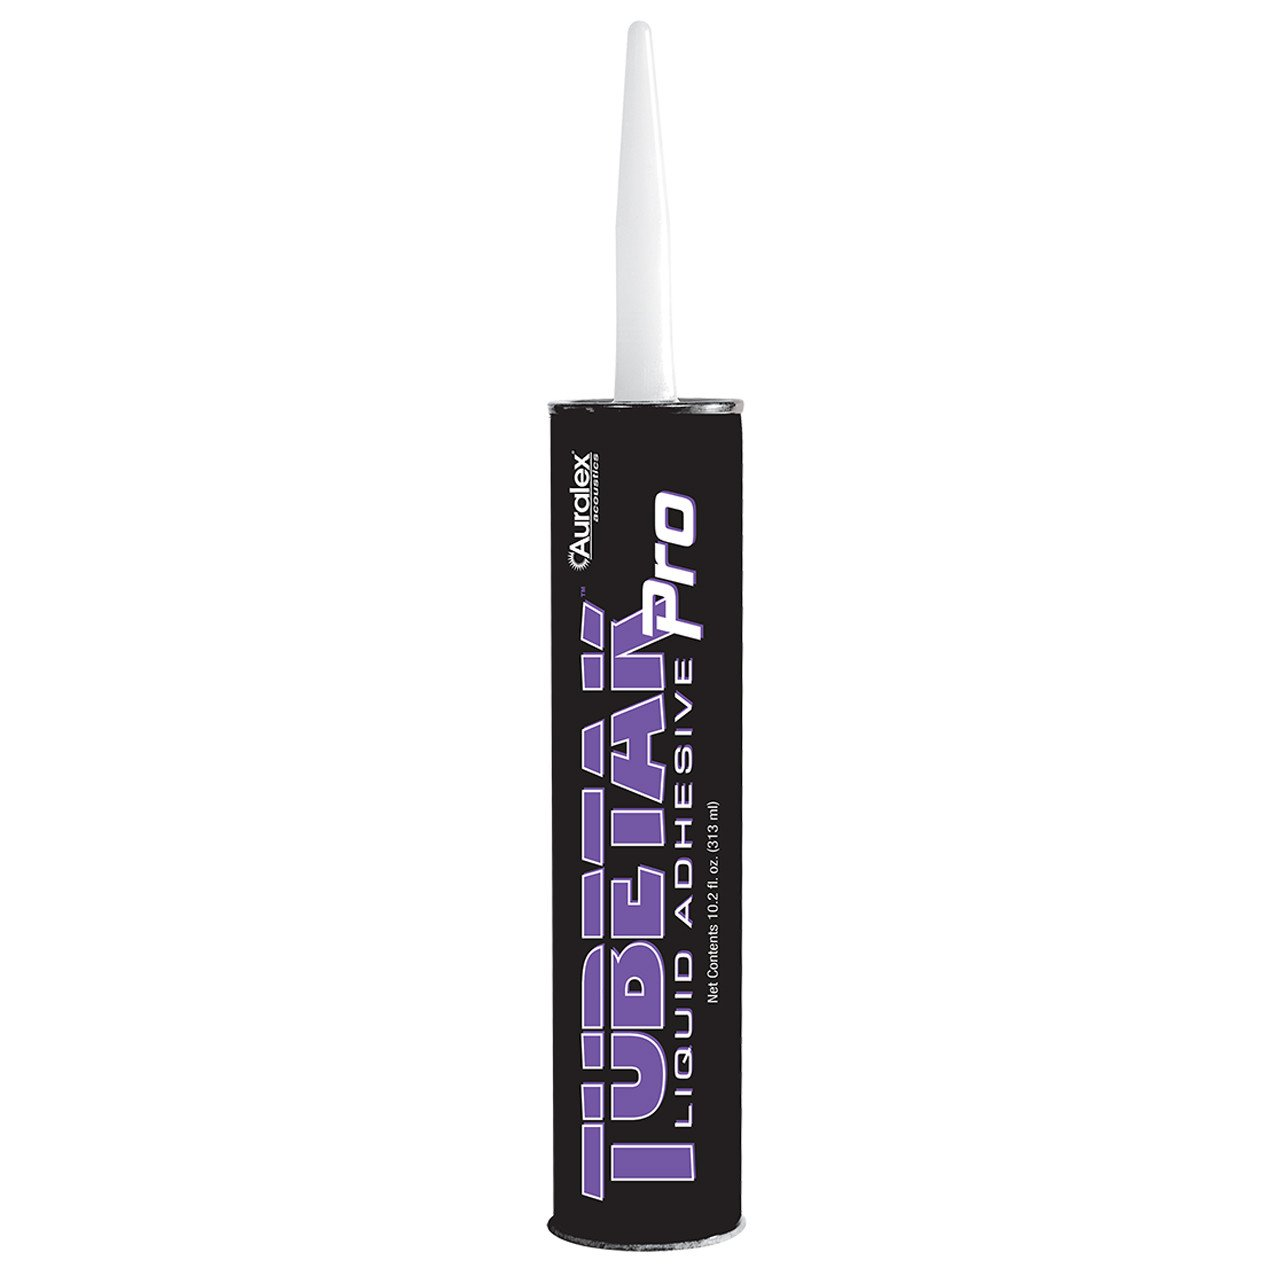 Construction Products - Auralex Tubetak Pro Liquid Adhesive